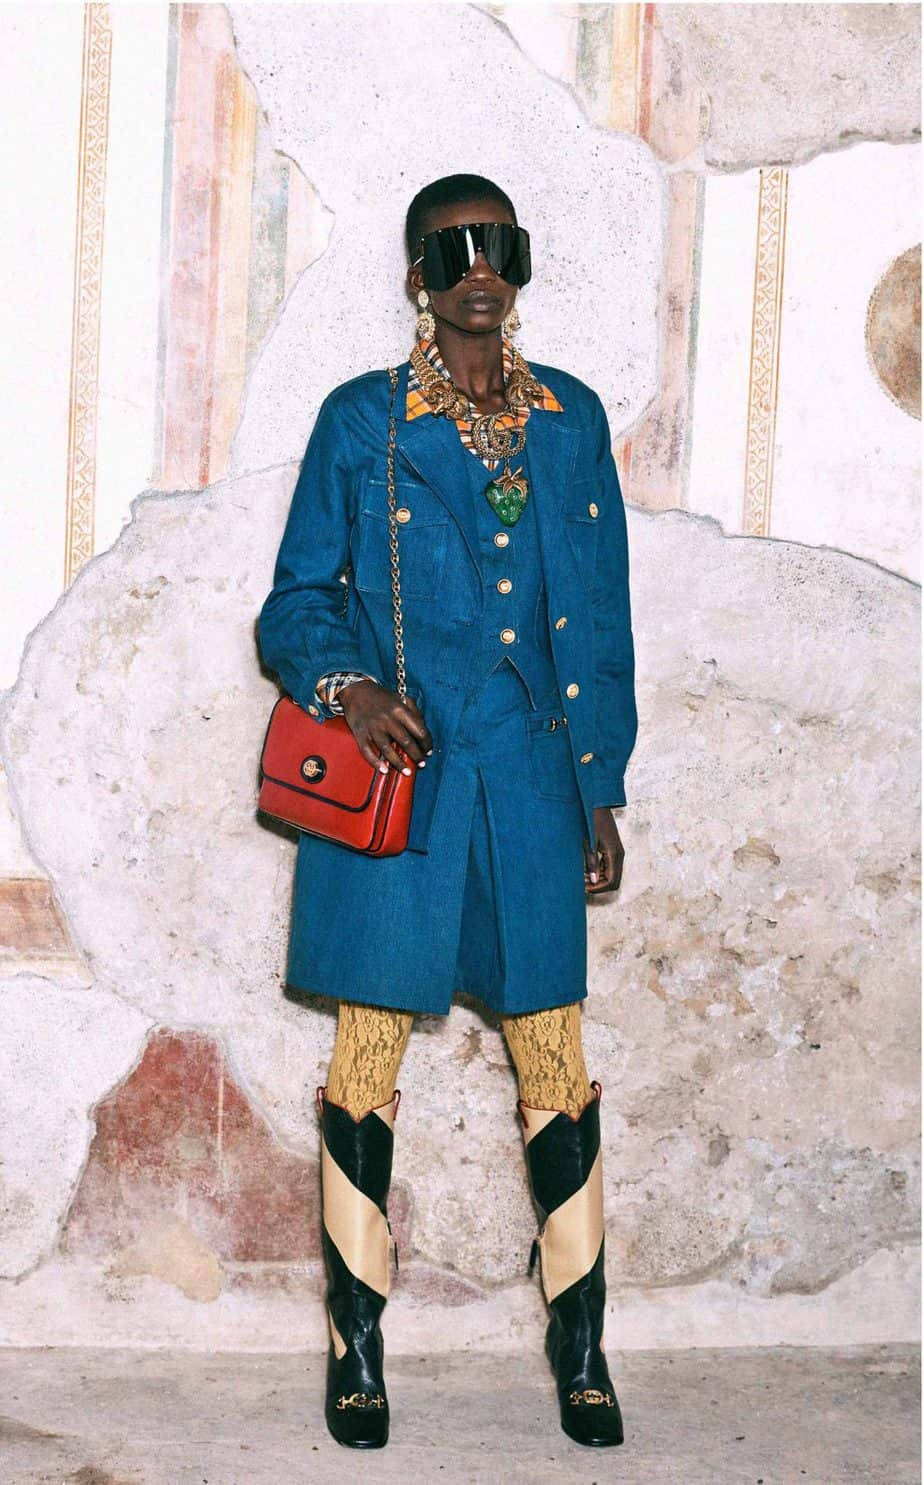 GUCCI, FALL 2019. WOMEN'S FASHION, Photographer Harmony Korine, Art Director, Christopher Simmonds - 85